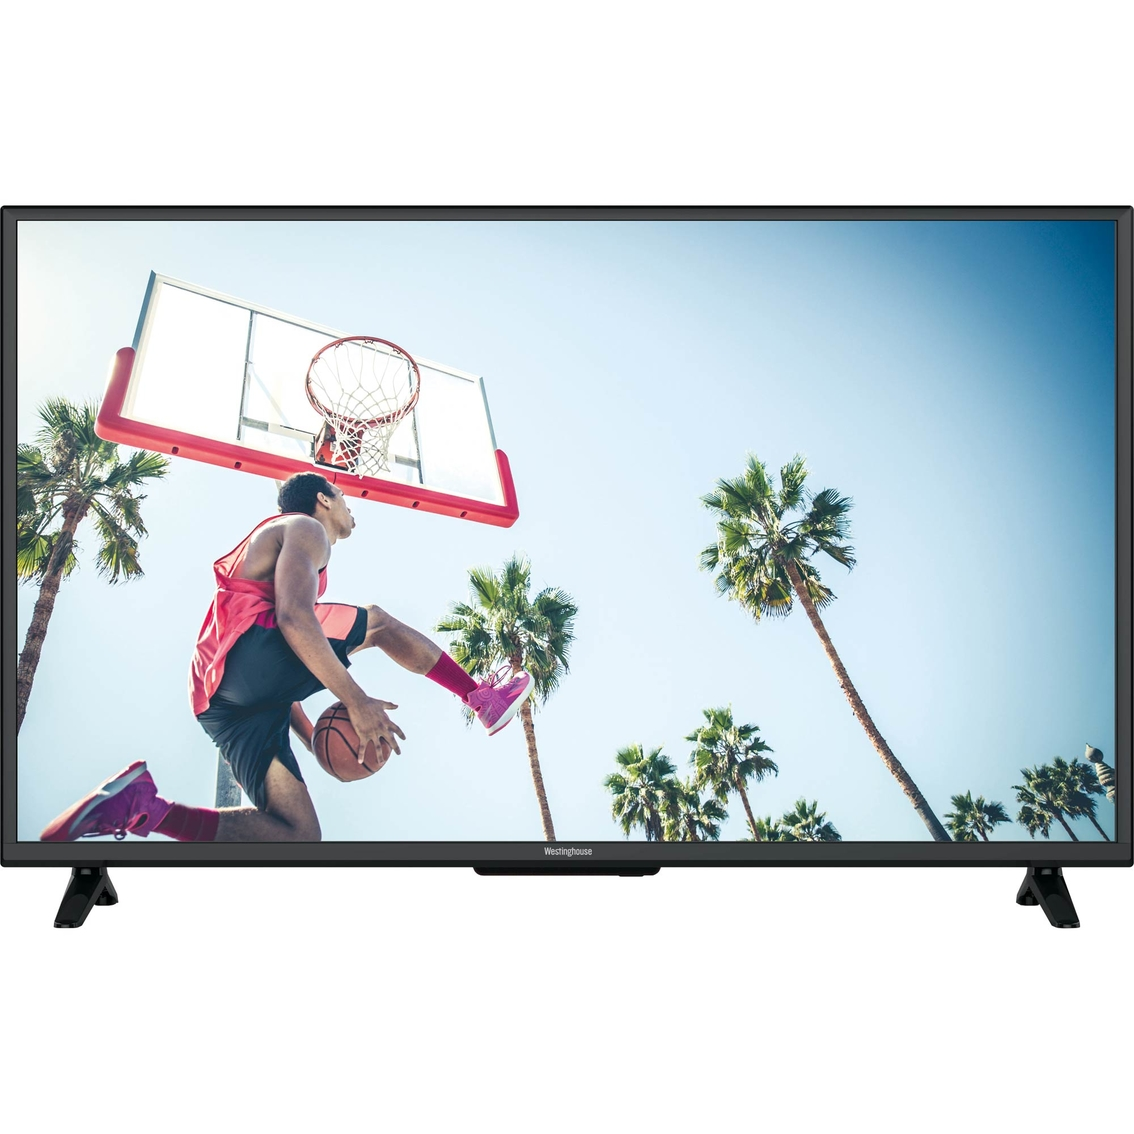 Westinghouse 40 In  Fhd Smart Led Tv Wd40fe2210 | Tvs